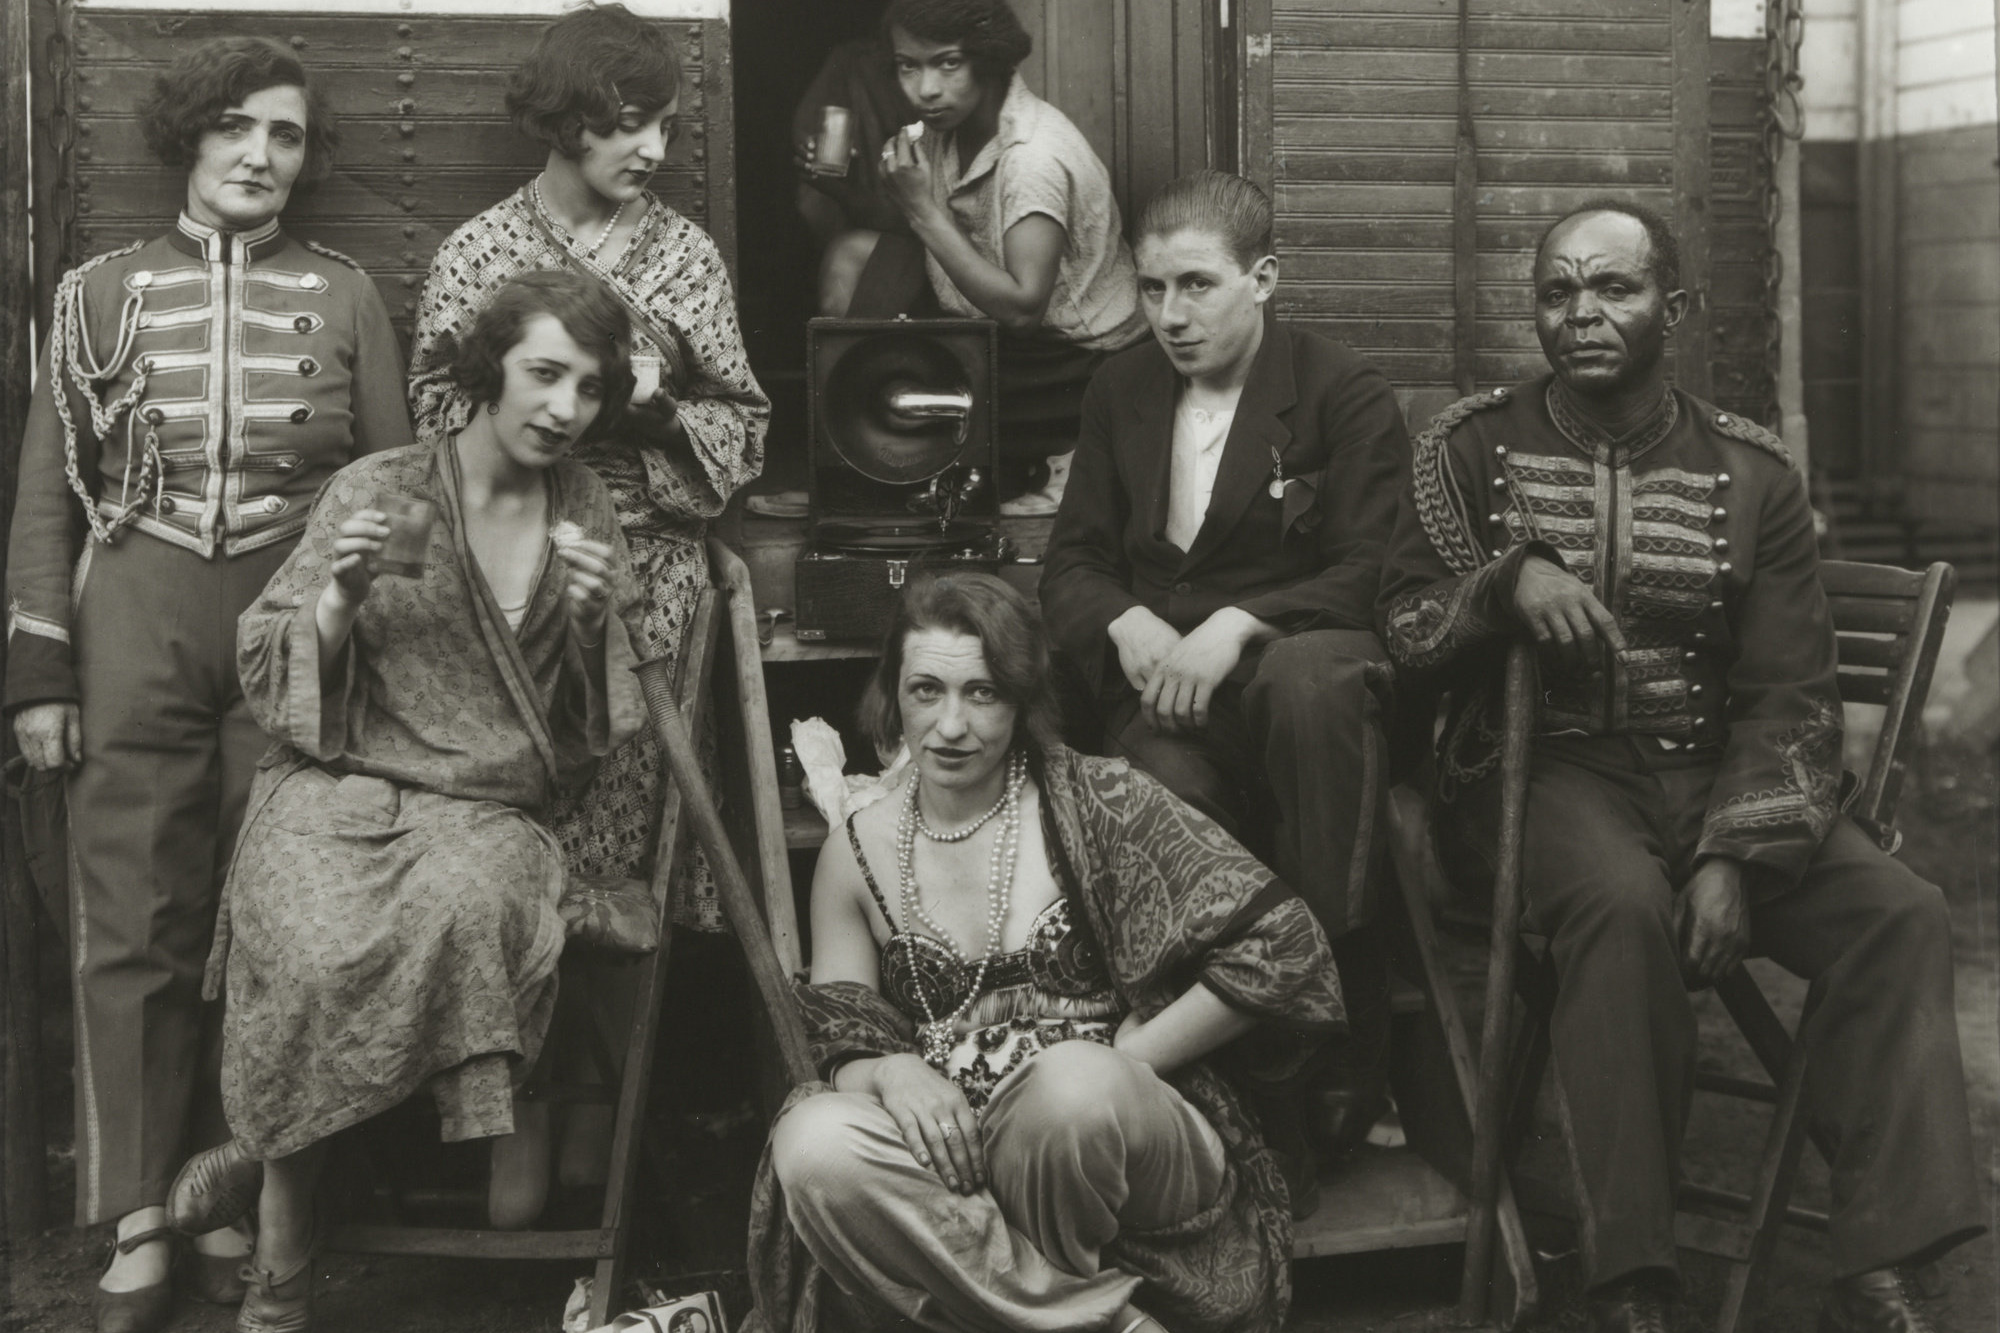 August Sander (German. 1876–1964). Circus Artists. 1926–32. Gelatin  silver print, 10 3/16 × 7 3/8″ (25.8 × 18.7 cm). The Museum of Modern Art, New York. Gift of the artist. © 2016 Die Photographische Sammlung/SK Stiftung Kultur - August Sander Archiv, Cologne/ARS, NY